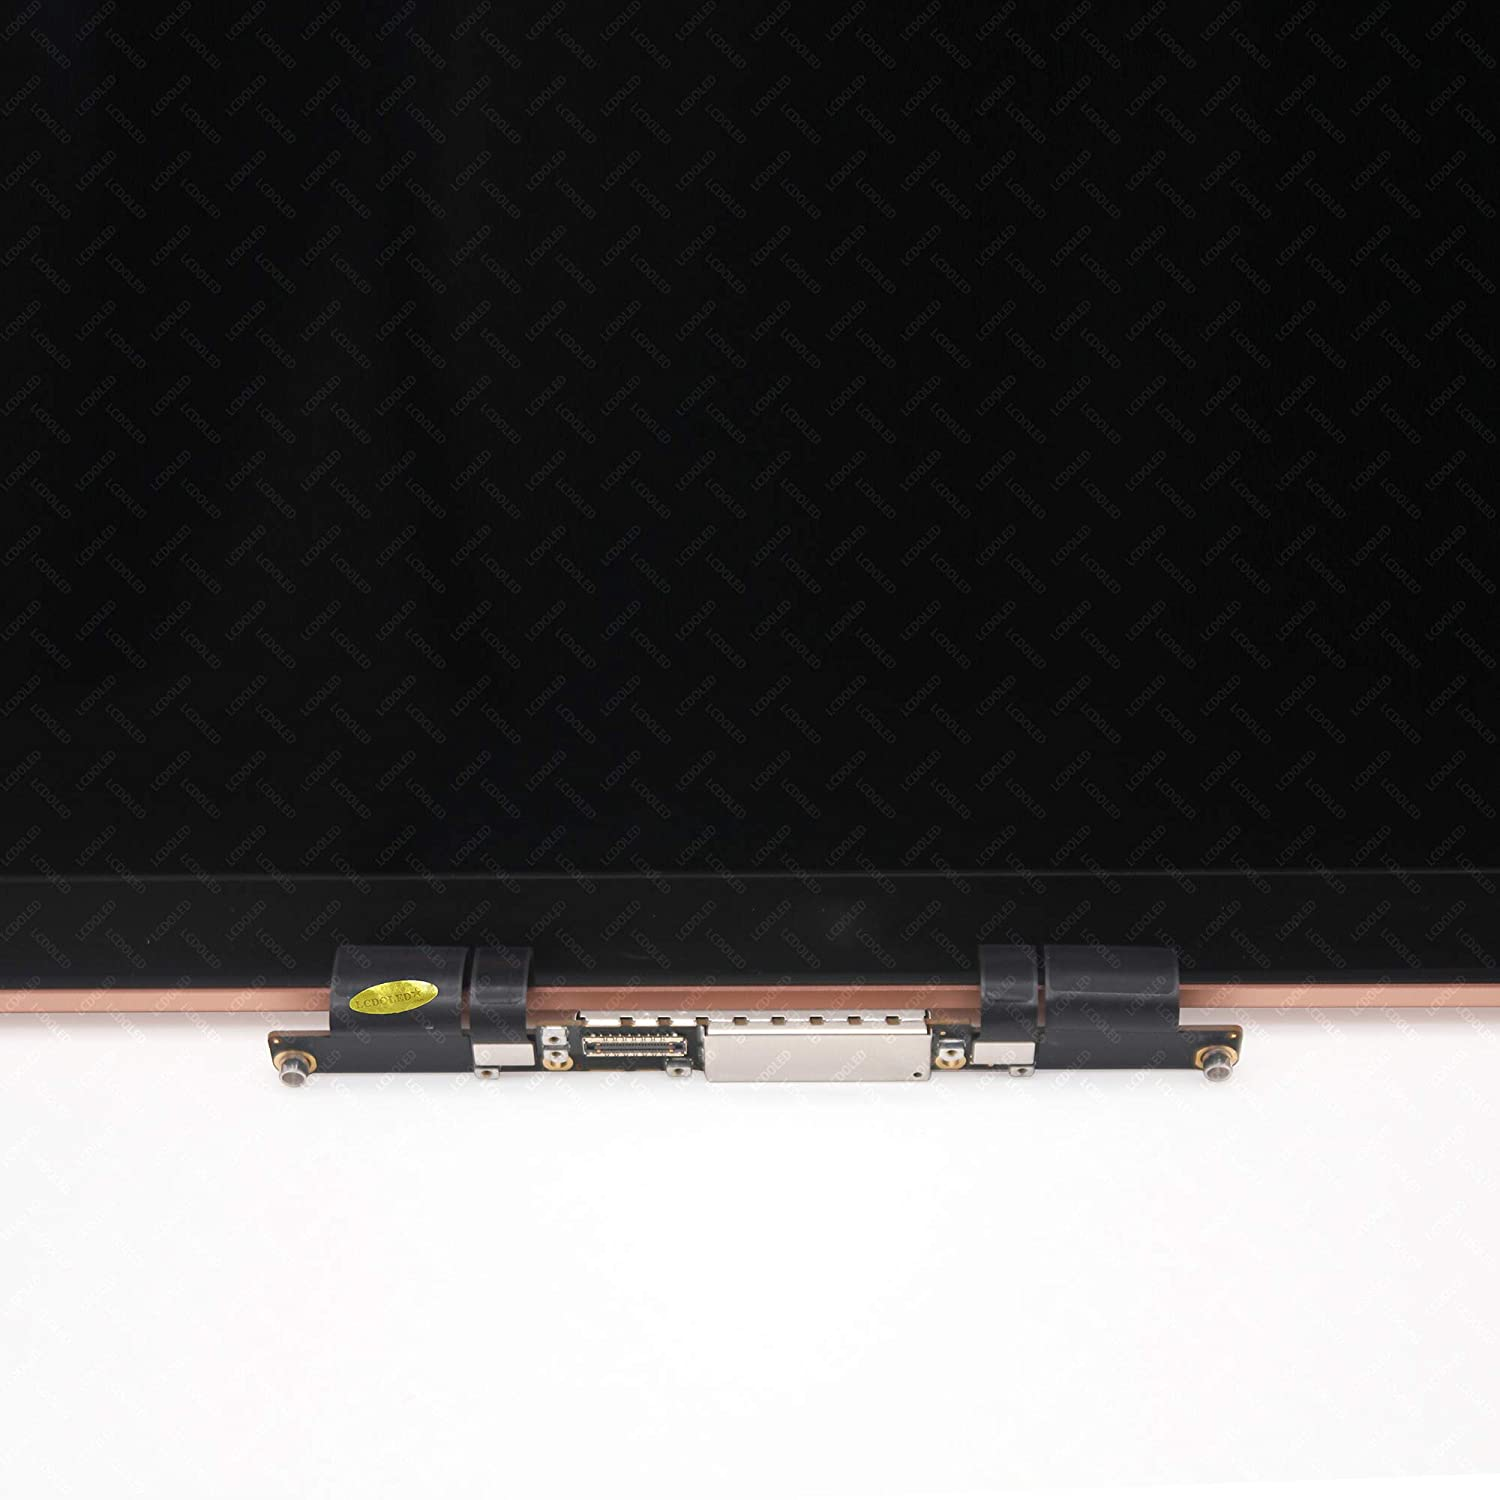 LCDOLED Replacement 13.3 inches 2560x1600 Full LCD Screen Complete Top Assembly for MacBook Air Retina 13